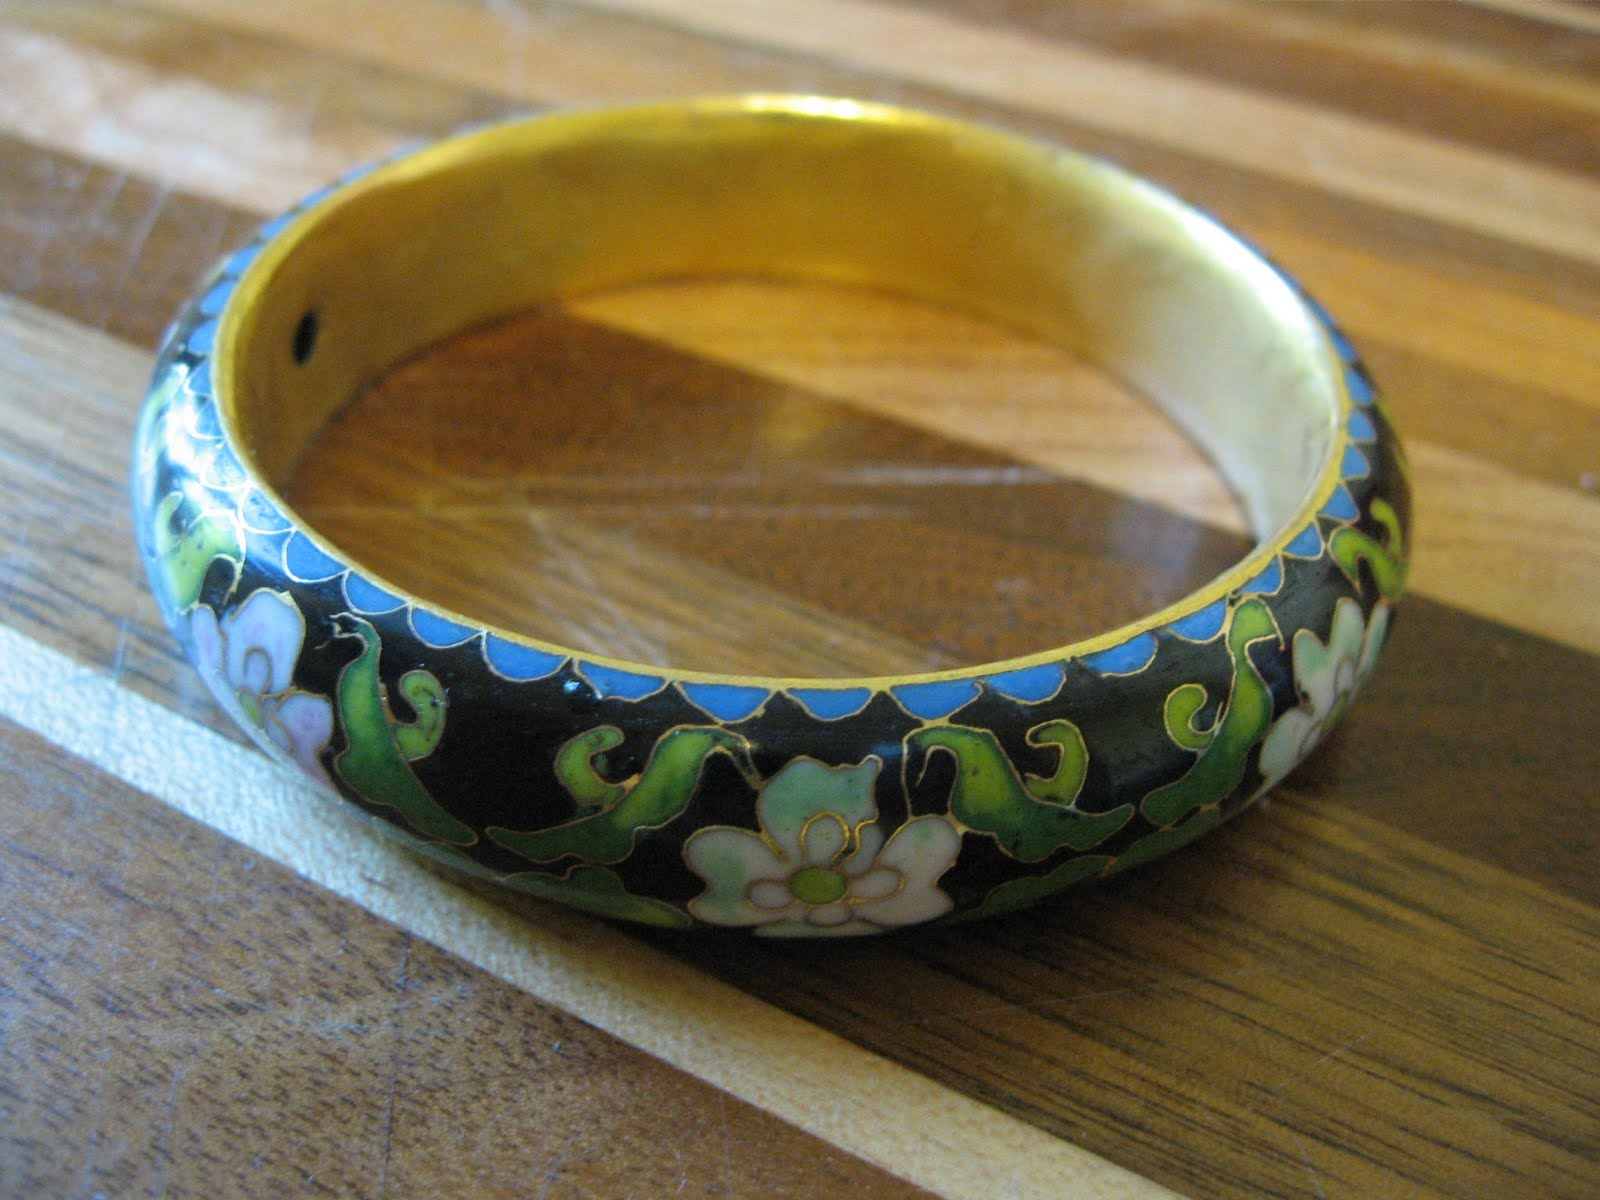 Cloisonné Bracelet In A Bulk Jewelry Lot It Is Old And Probably Not Meant For Export